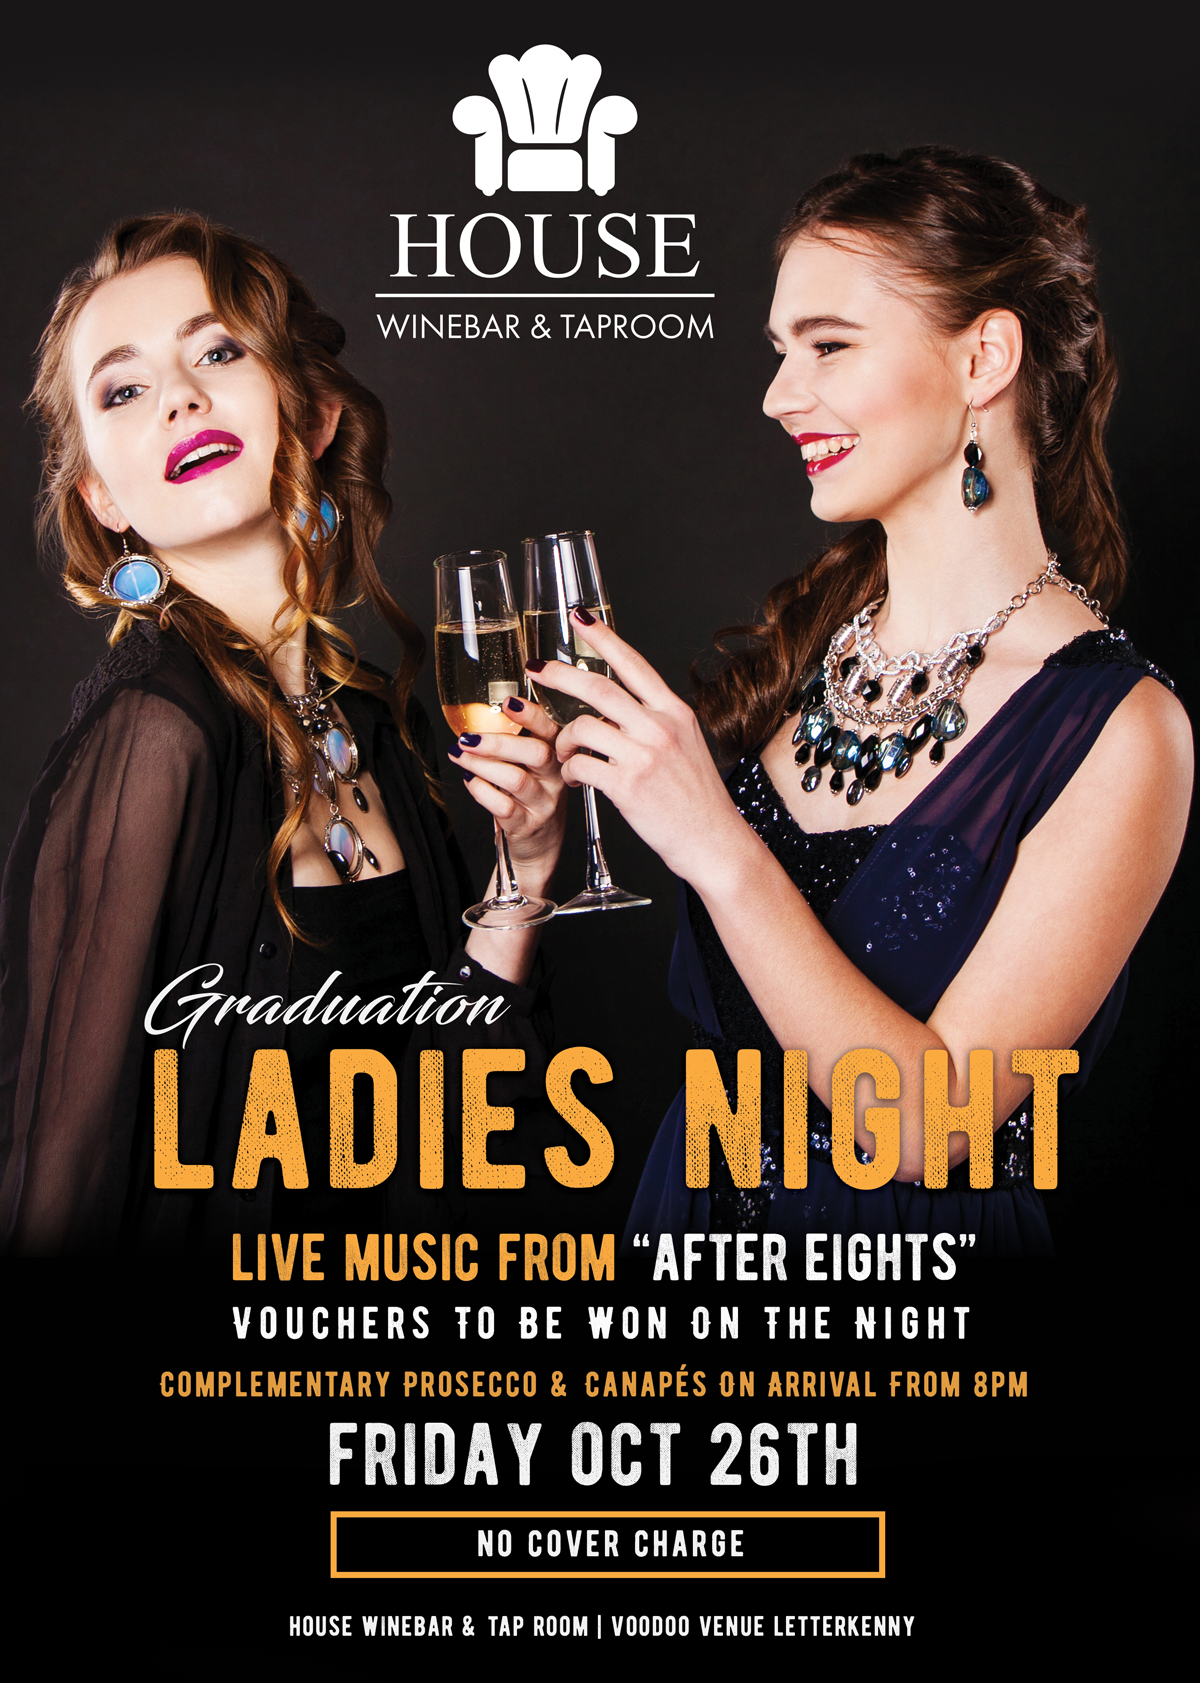 house-ladies-night-graduation---fri-oct-26-2018.jpg